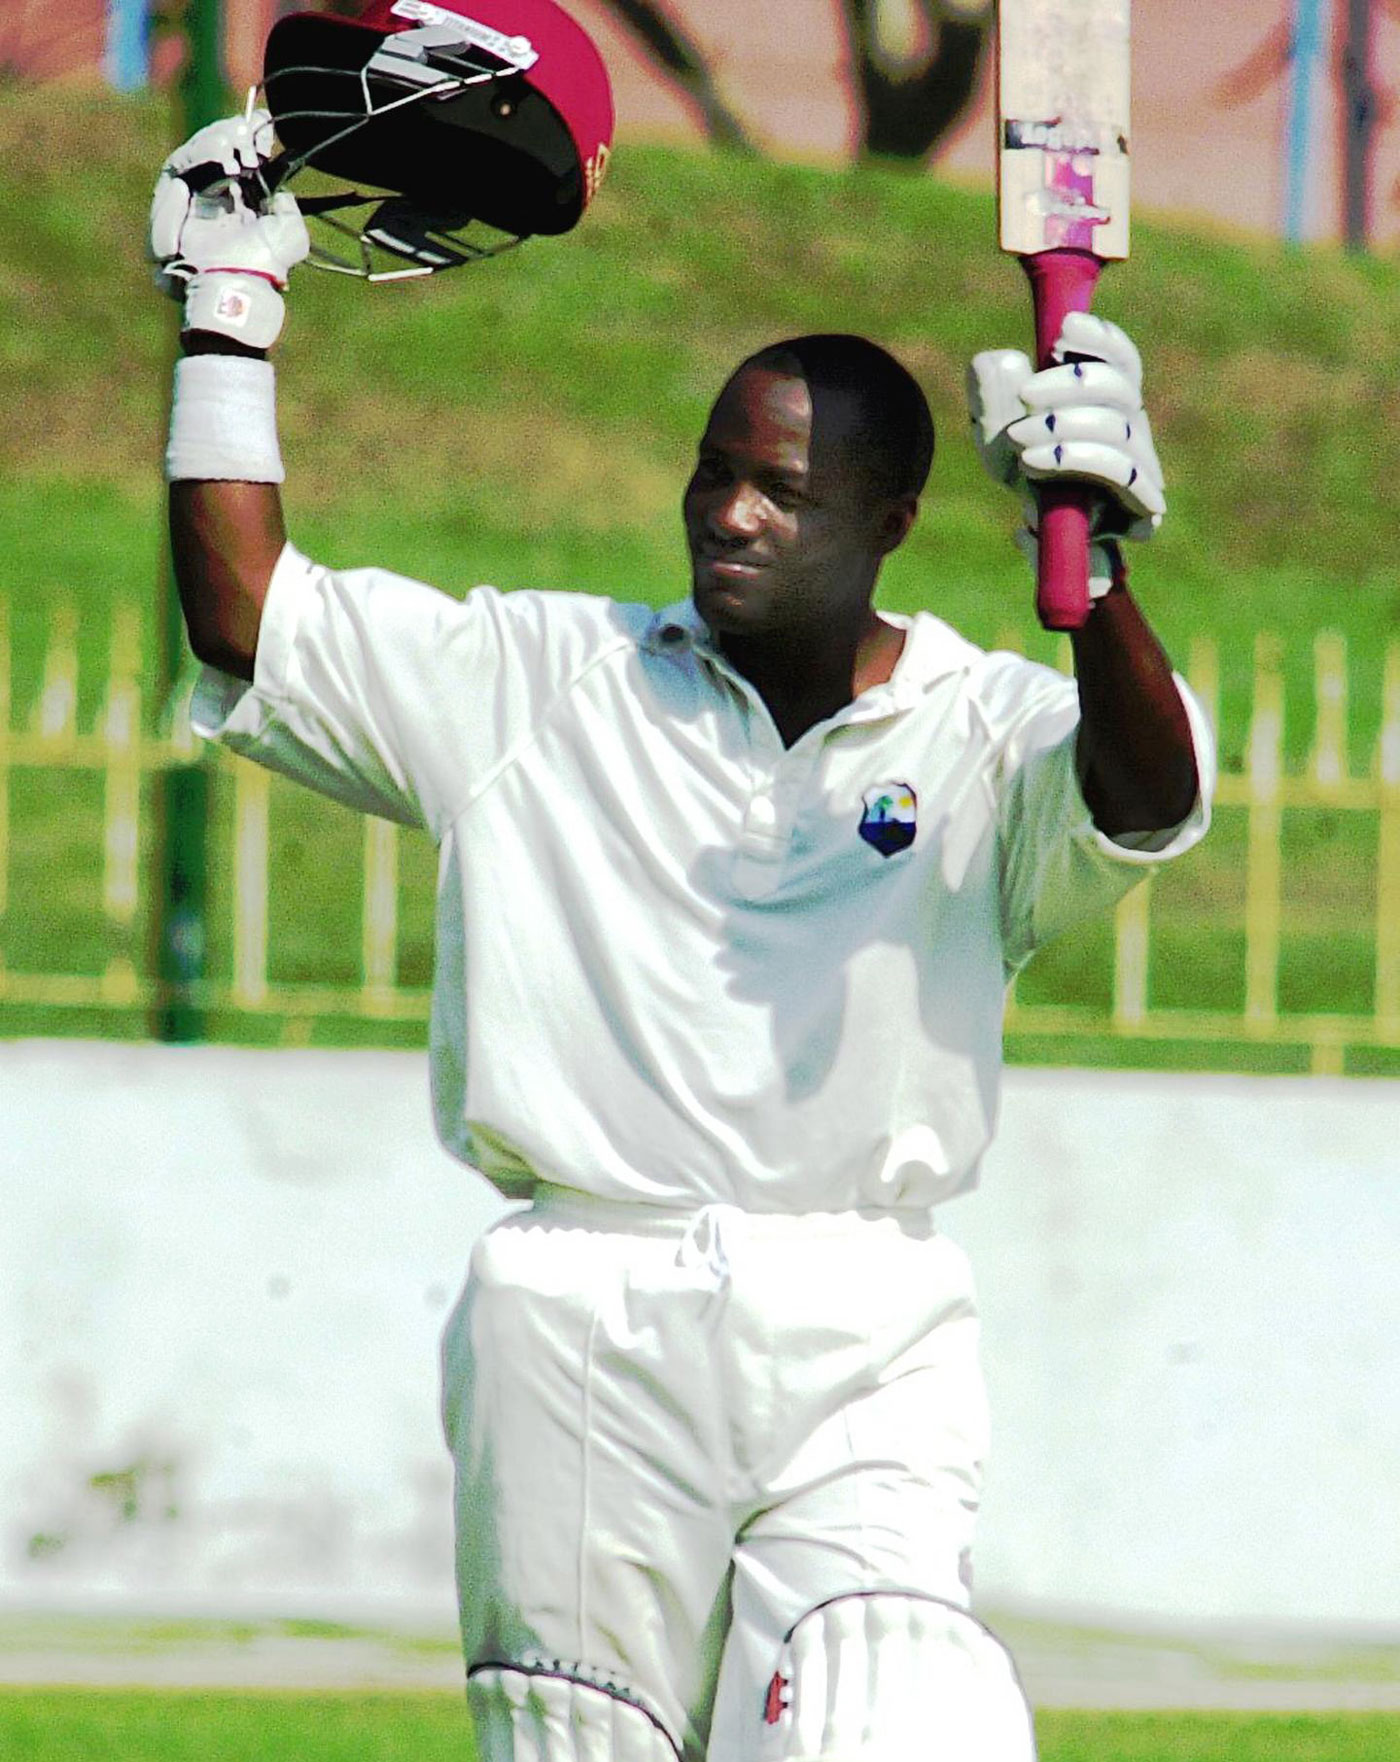 Solitary splendour: Brian Lara's Colombo effort was masterful but came in a heavy defeat